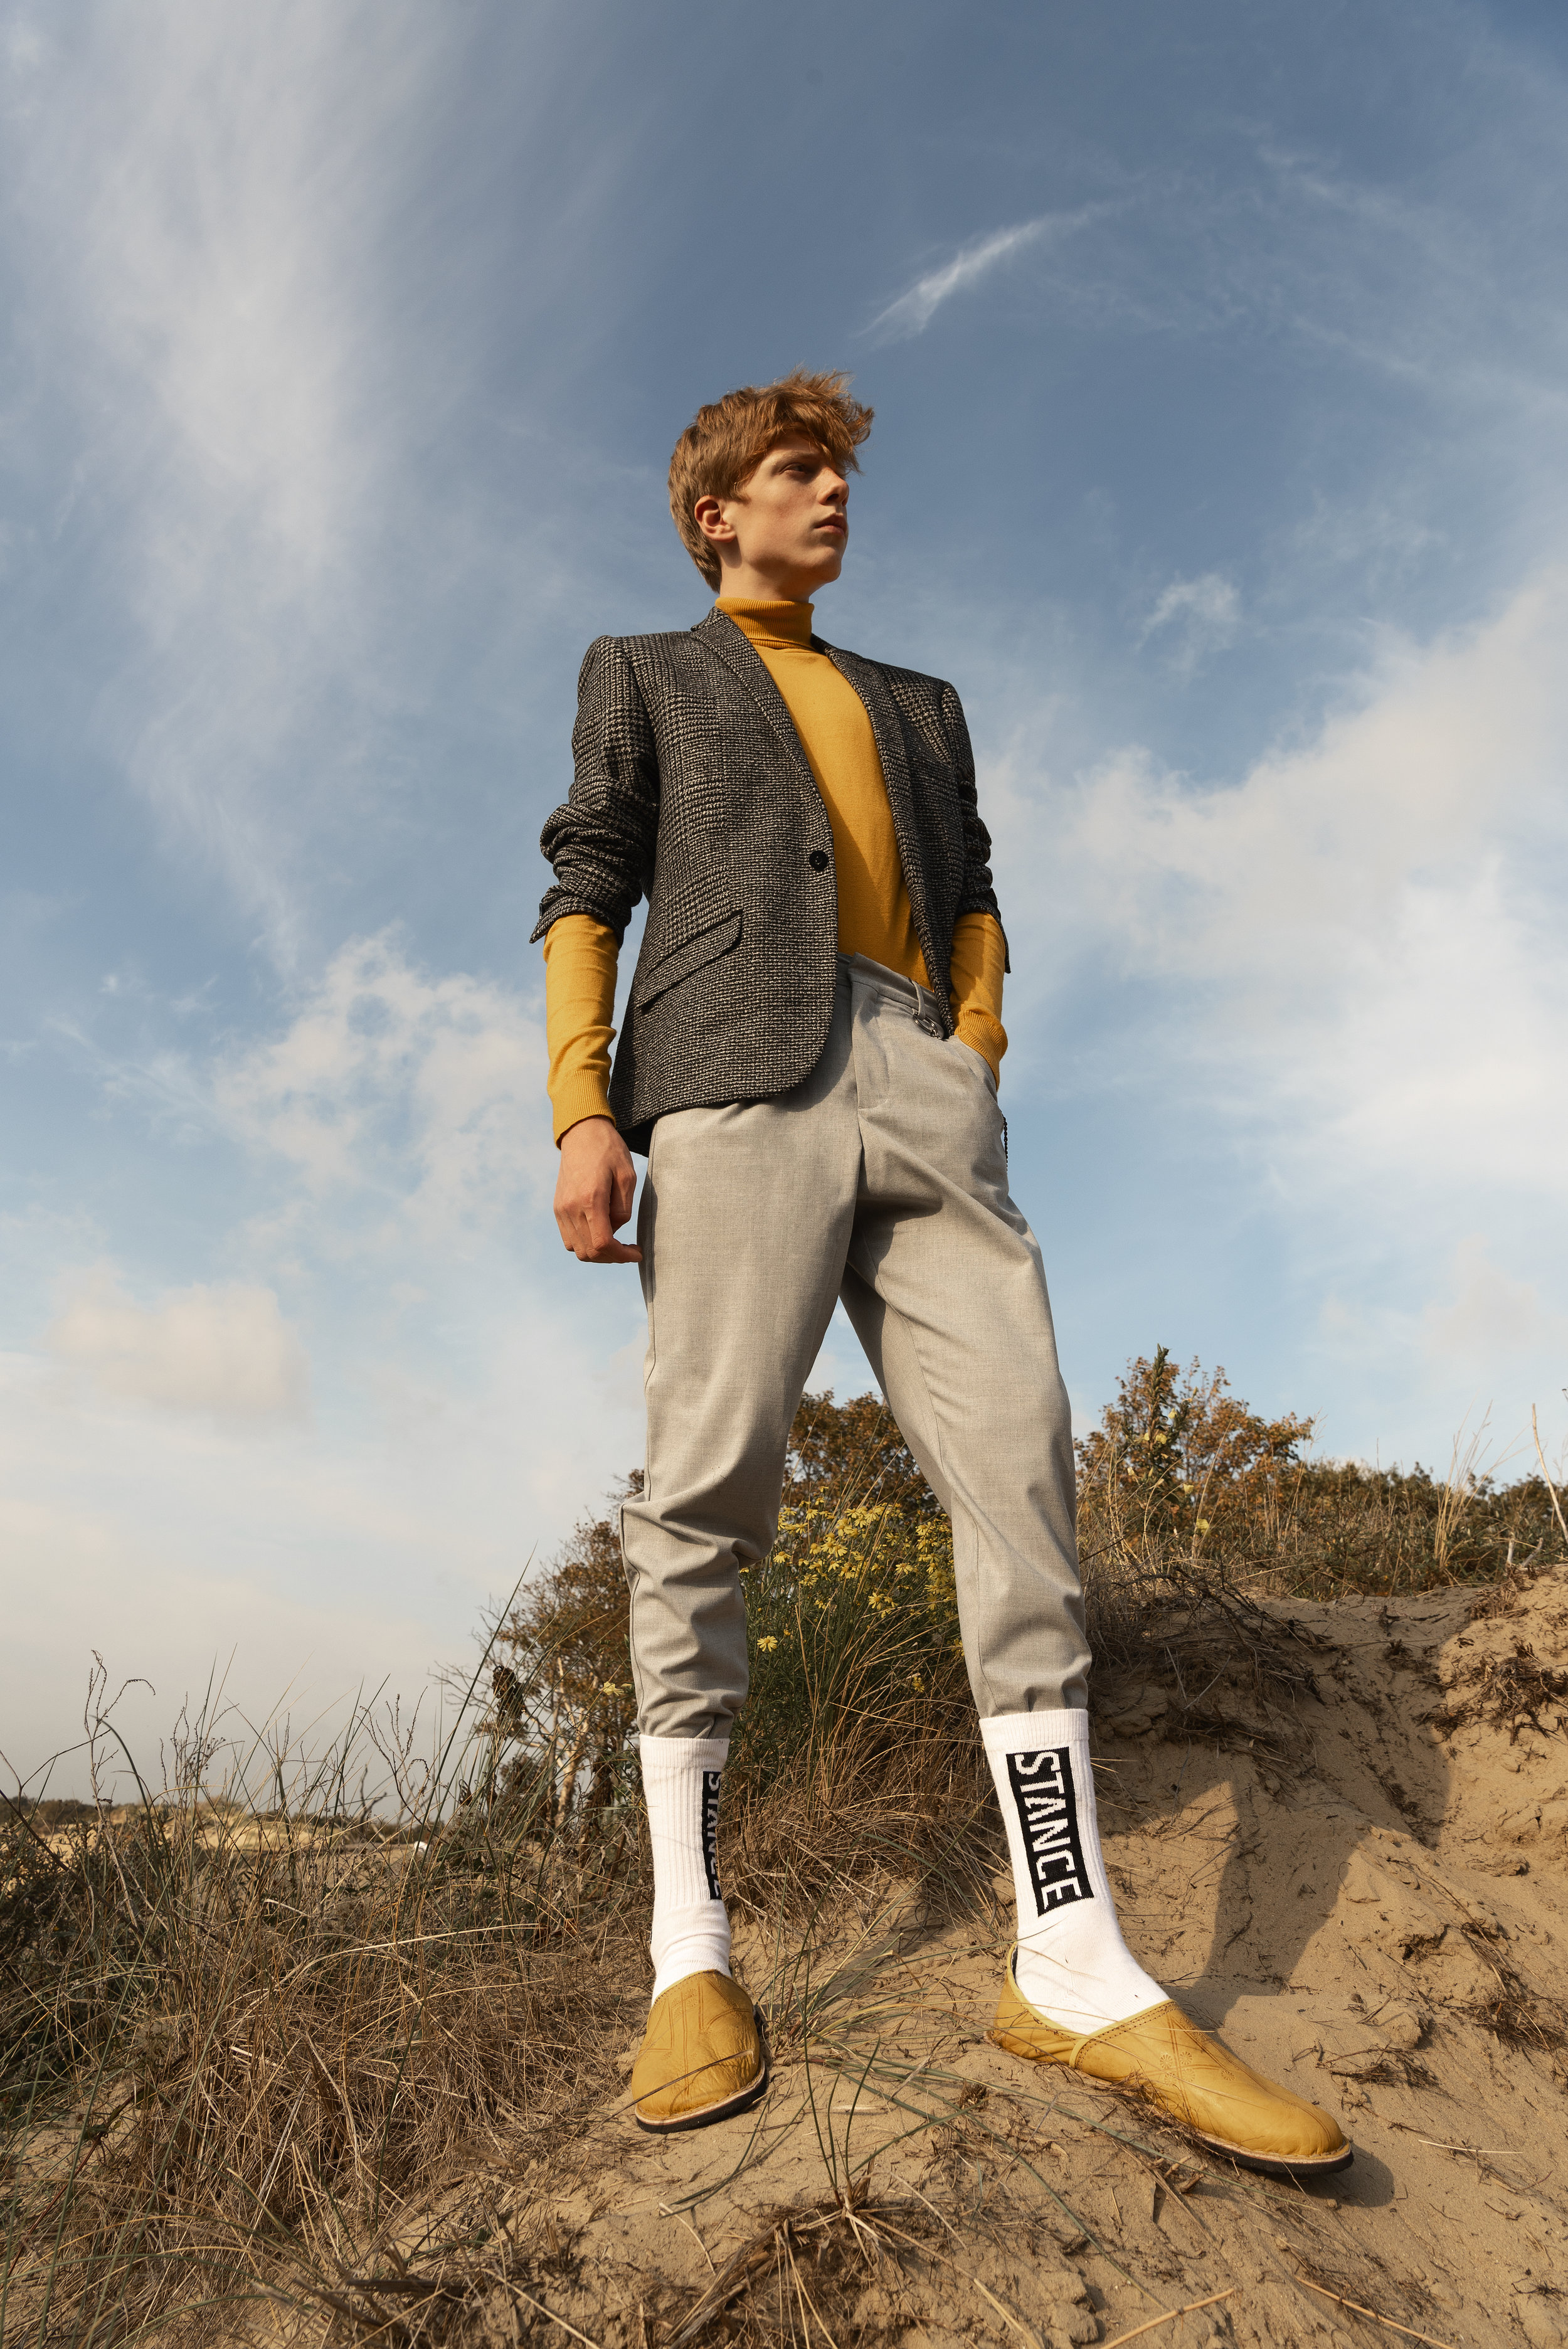 Turtle neck and jacket River Island, pants Pull and Bear, socks and shoes stylist wardrobe.